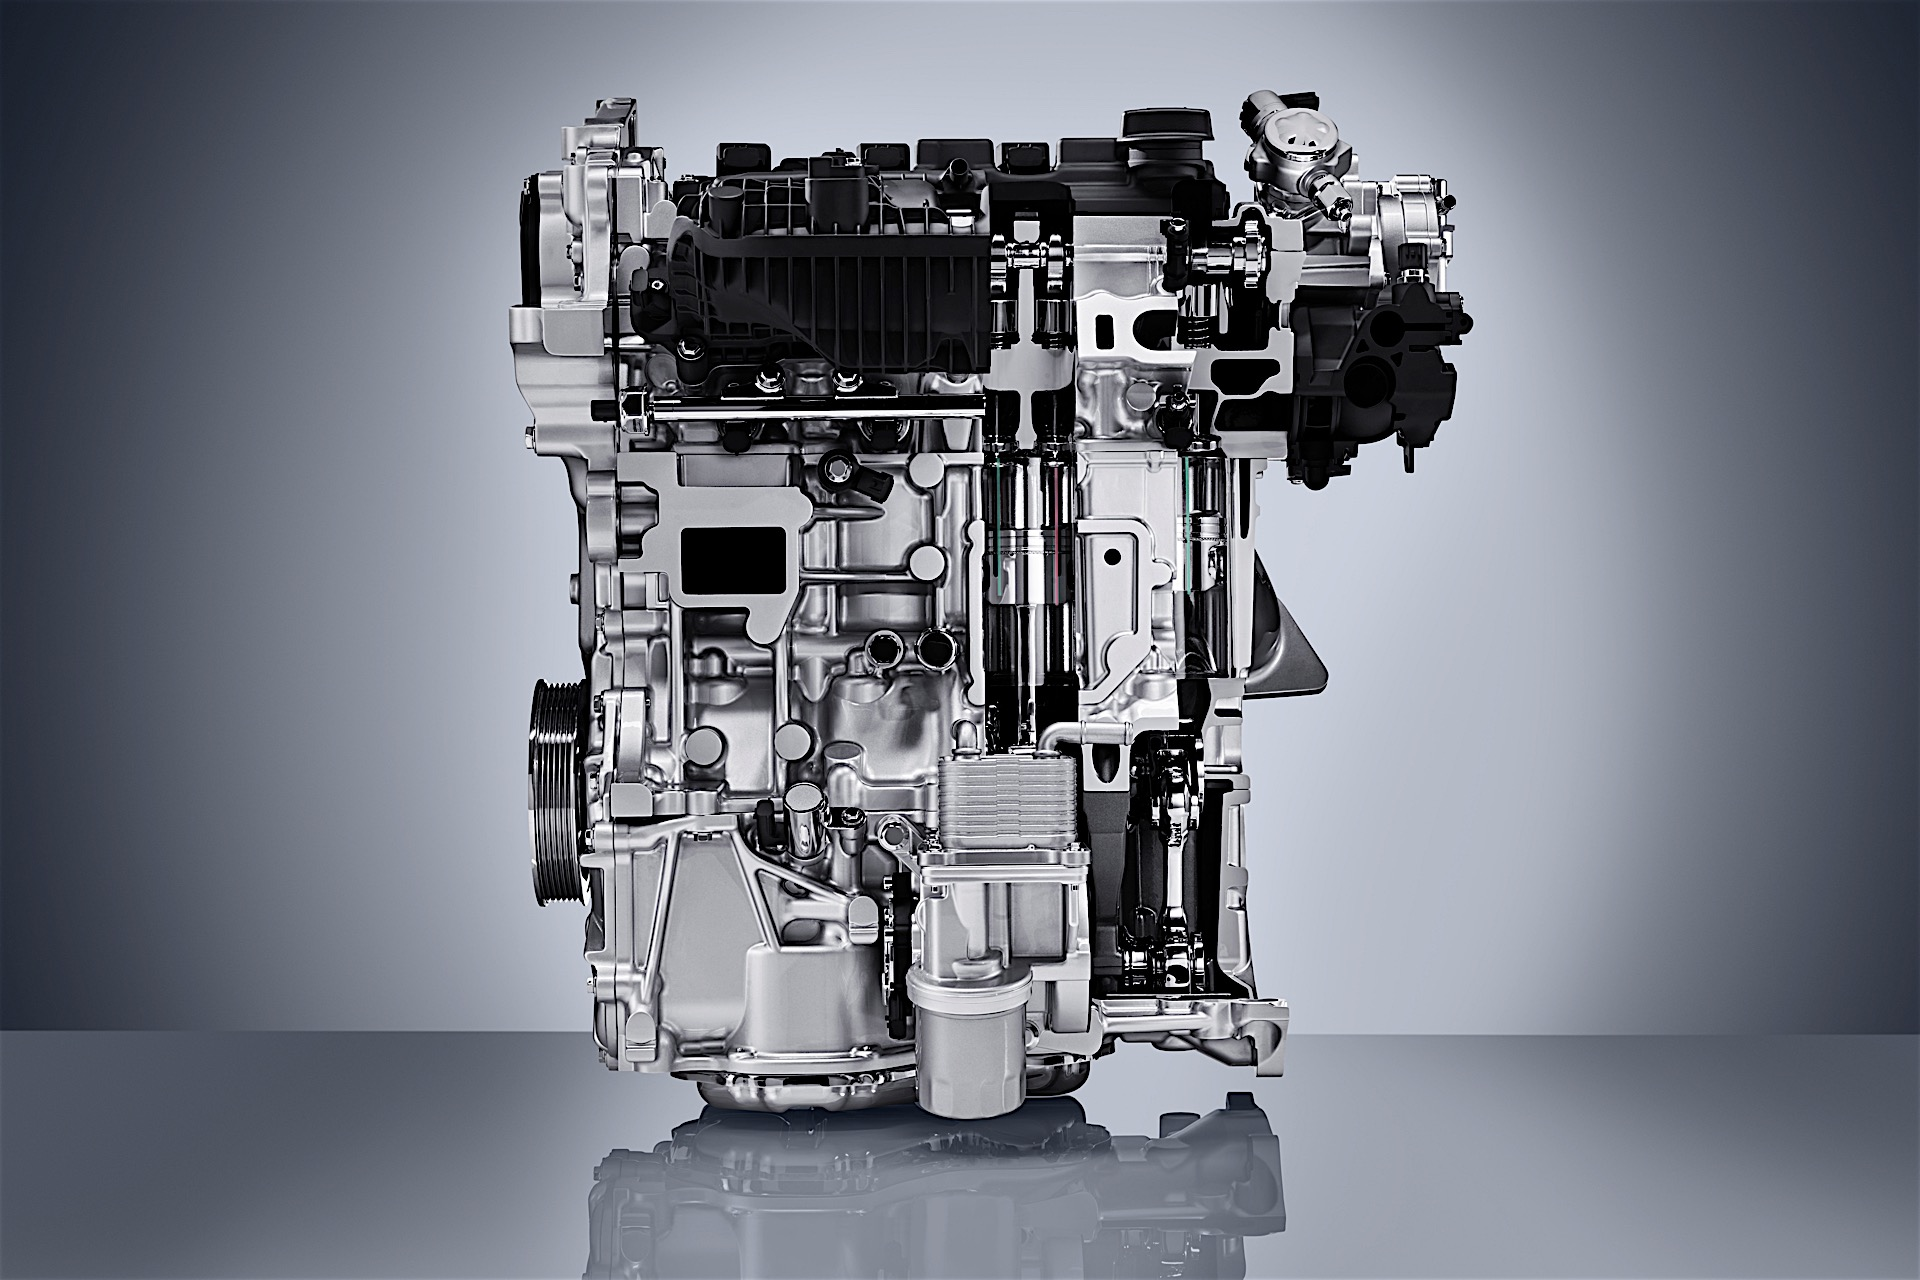 infiniti's variable compression engine - why it's important and how